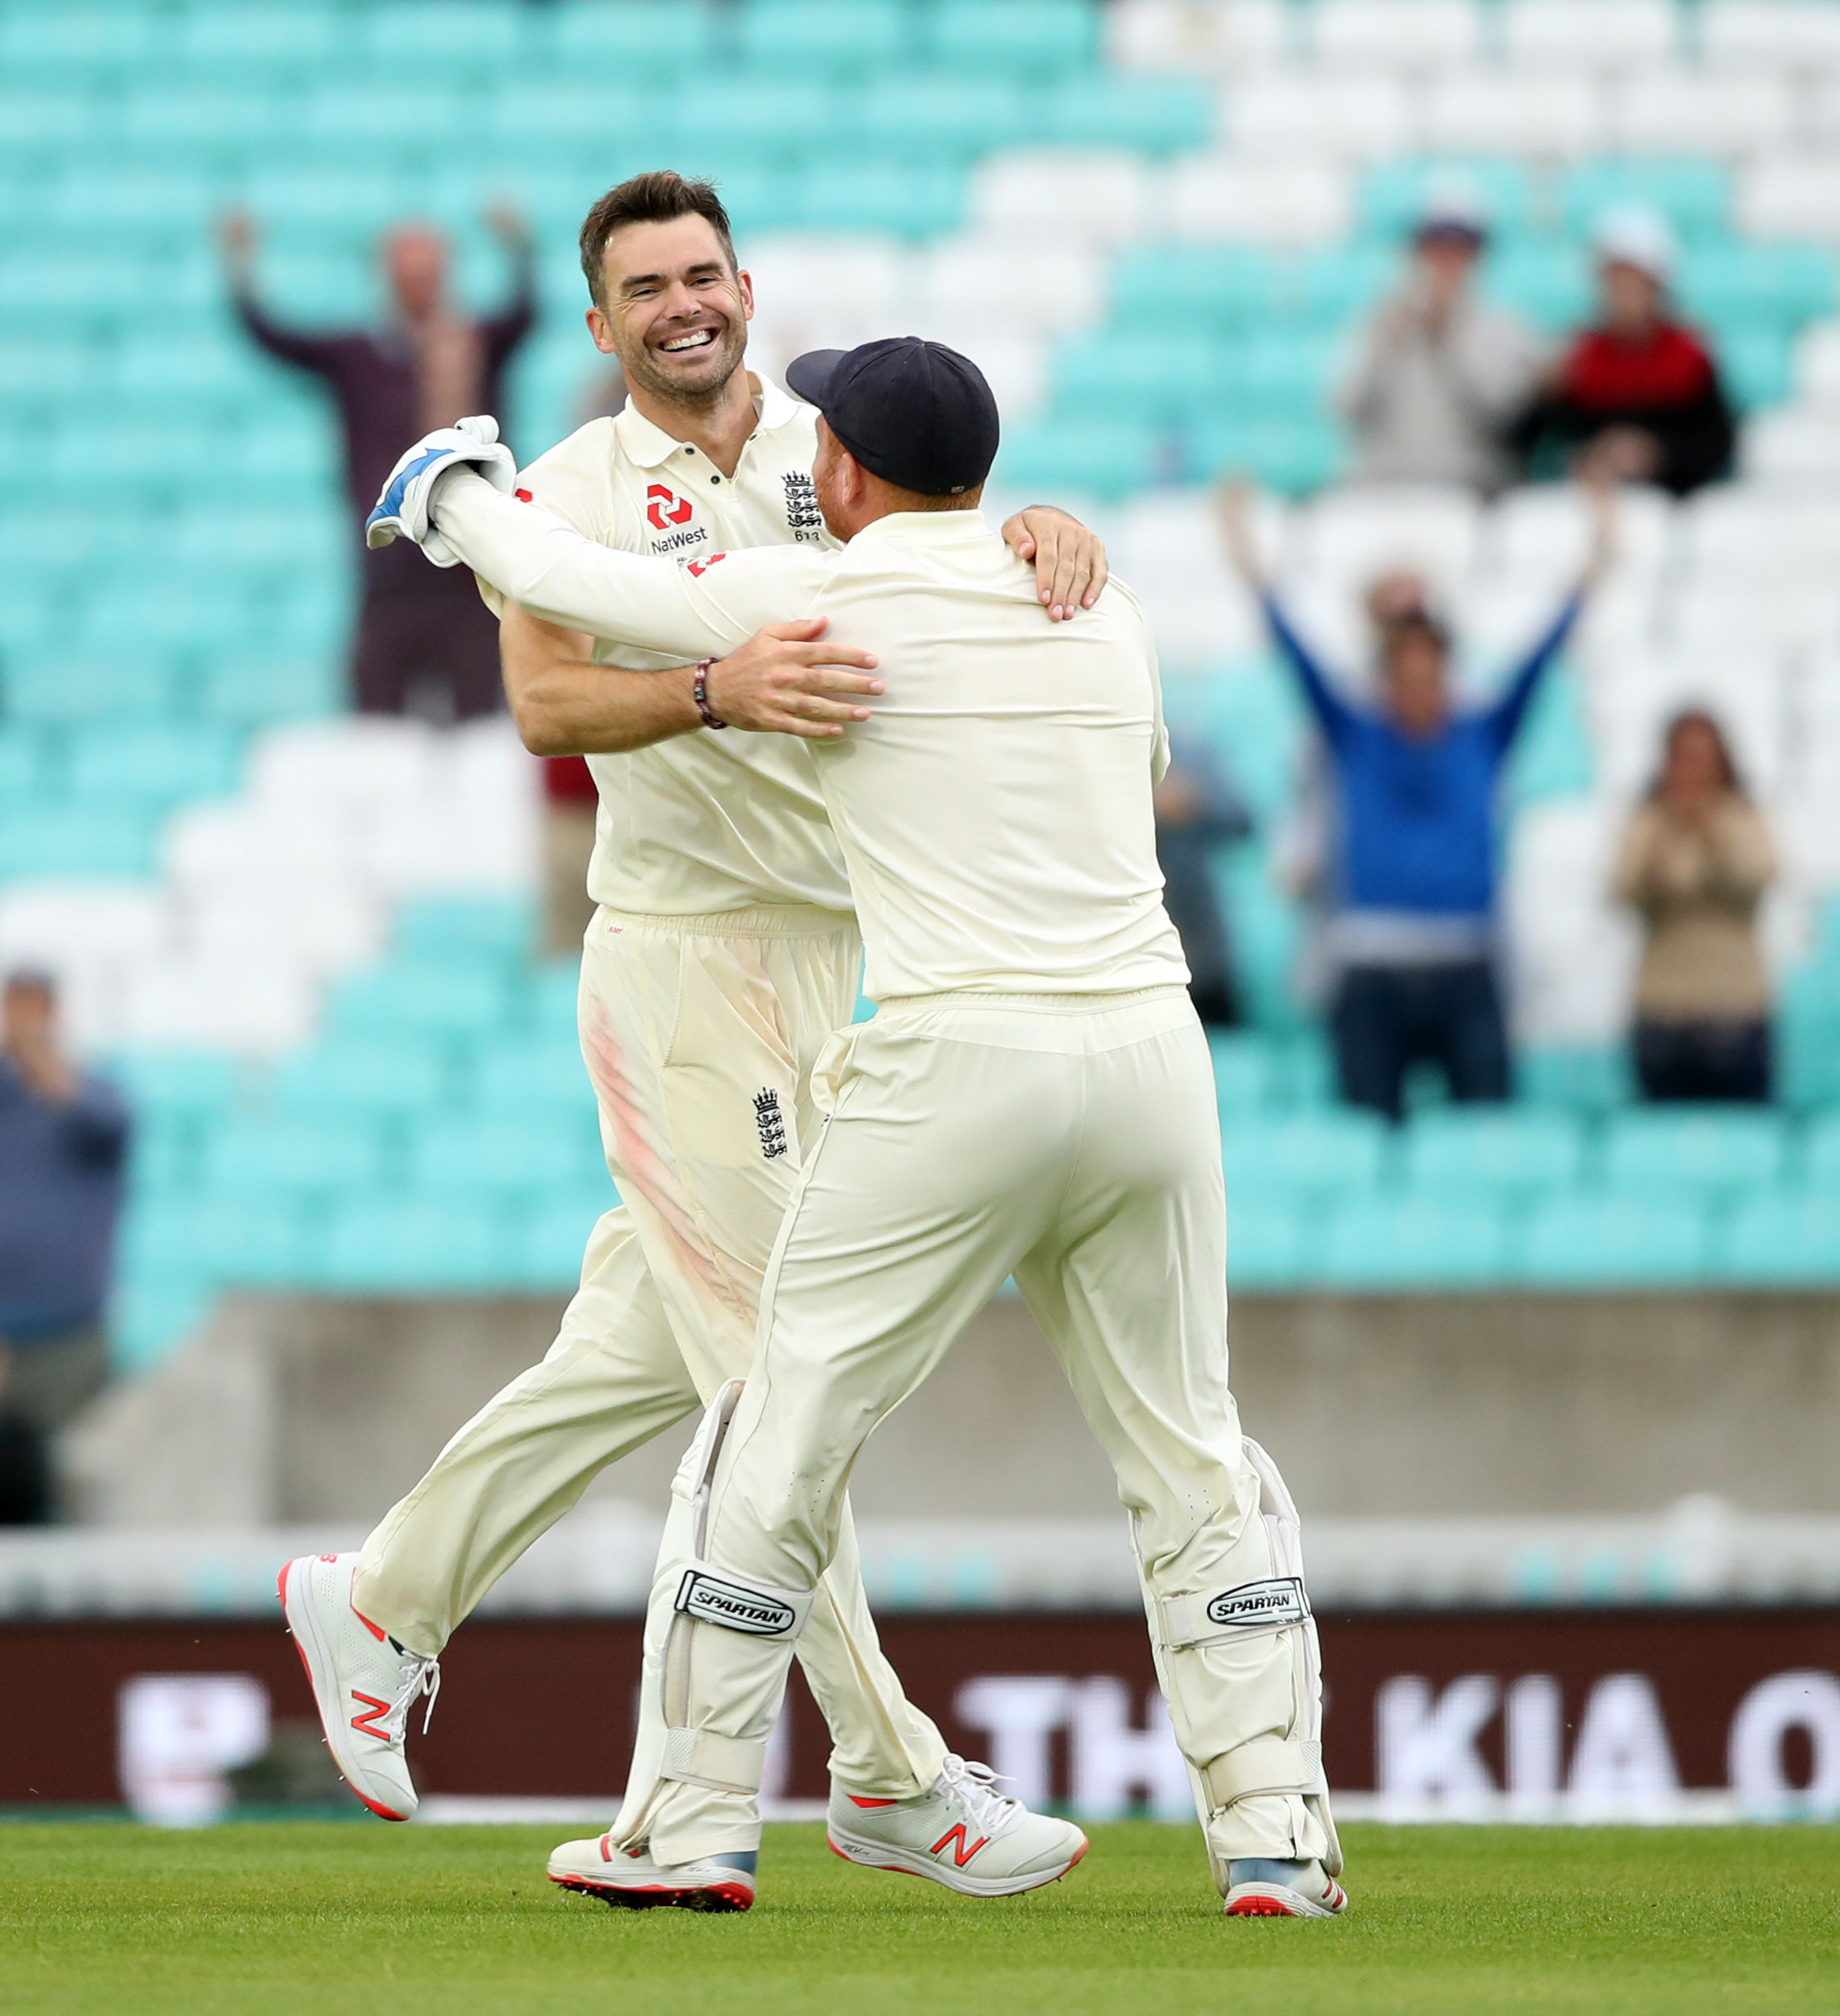 Jimmy Anderson celebrates taking the wicket that saw him go above Glenn McGrath in the all-time list